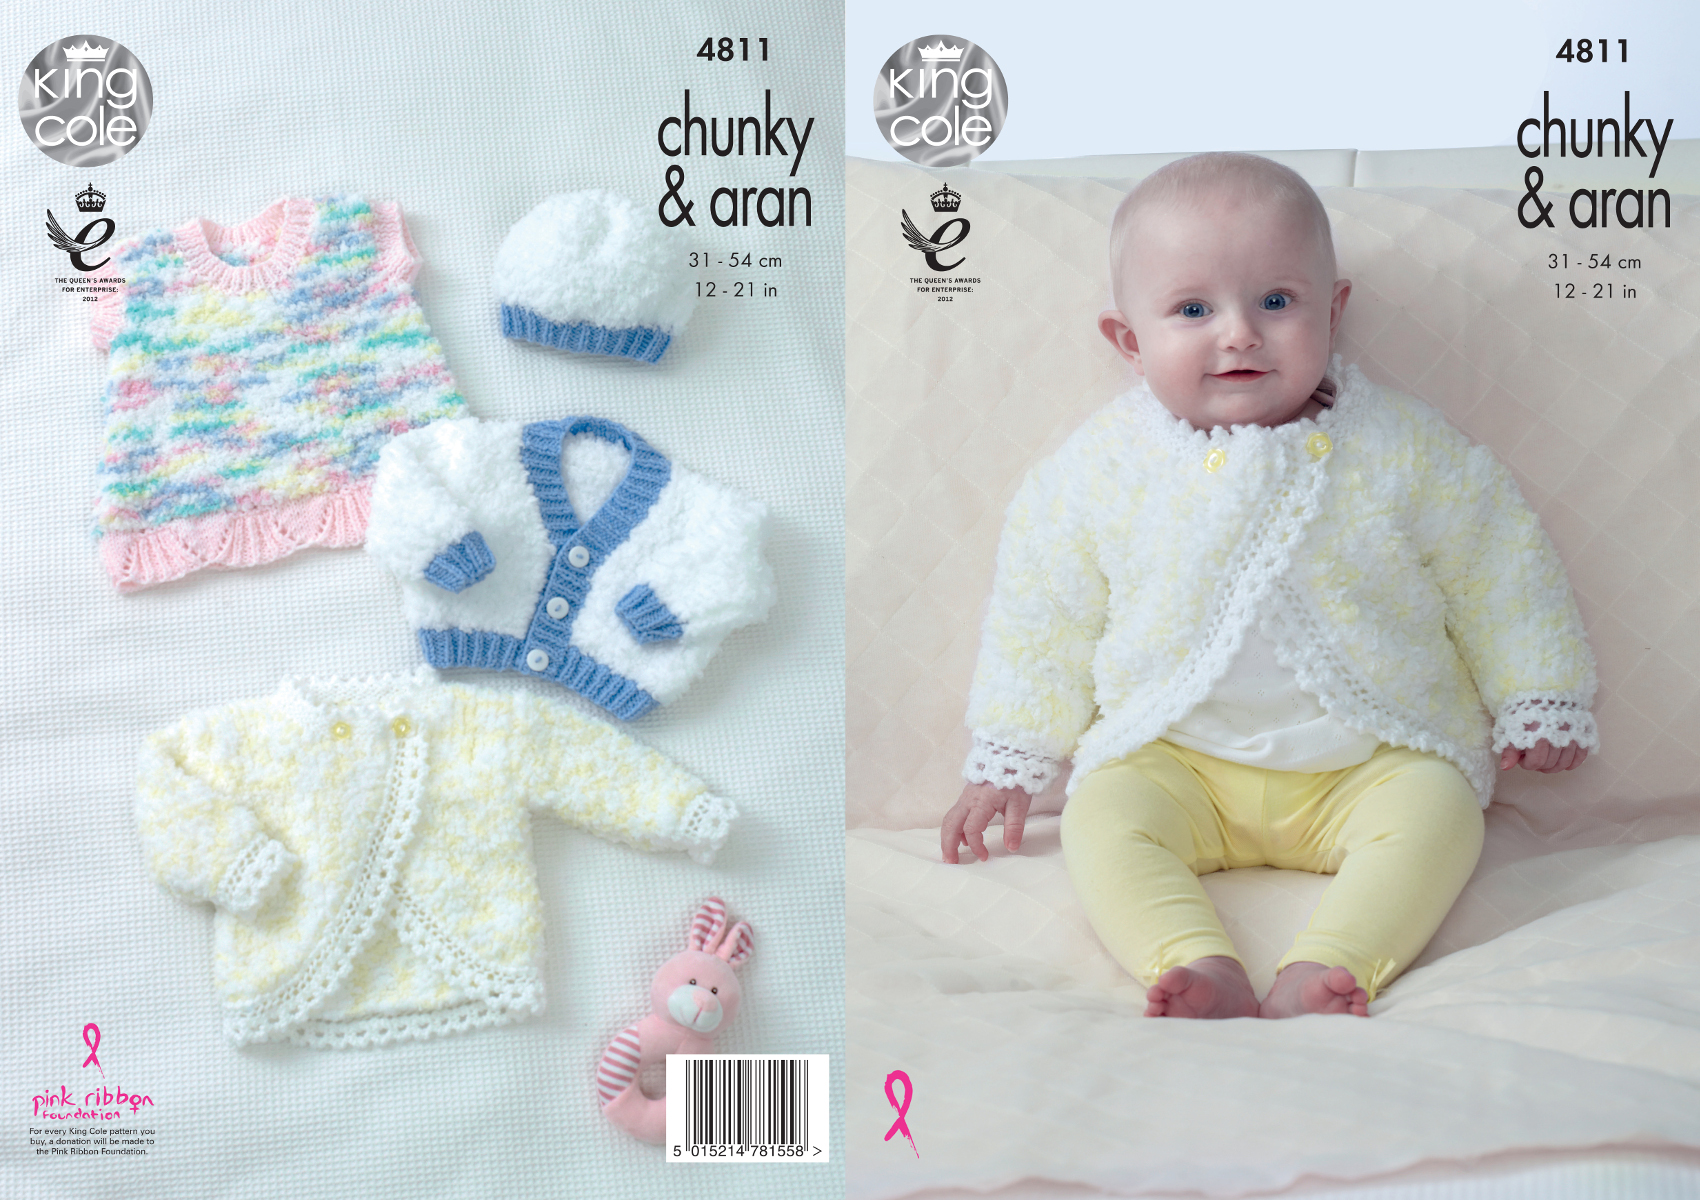 Baby knitting pattern cardigans dress hat king cole chunky with baby knitting pattern cardigans dress hat king cole chunky with aran 4811 bankloansurffo Image collections